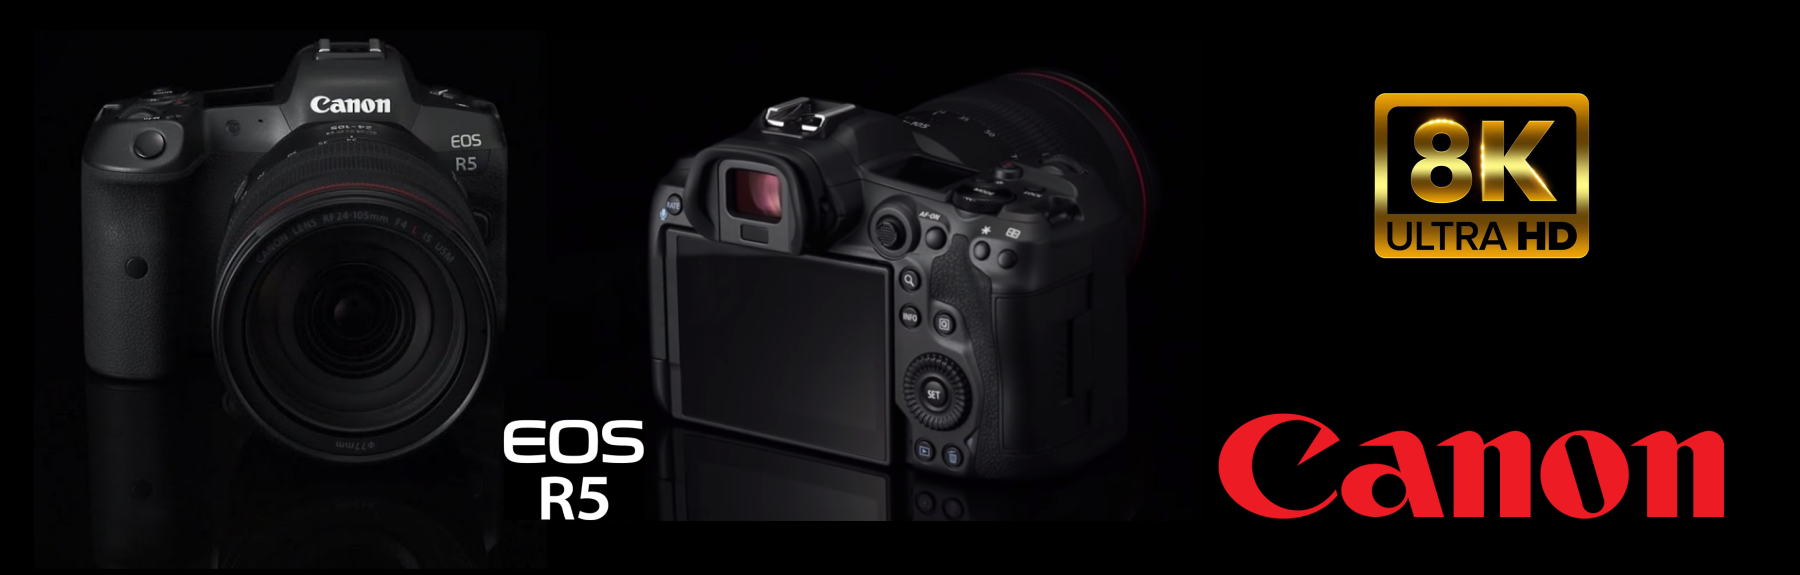 https://www.mywayvideo.com/index.php/product/canon-eos-r5-mirrorless-digital-camera-body-only/